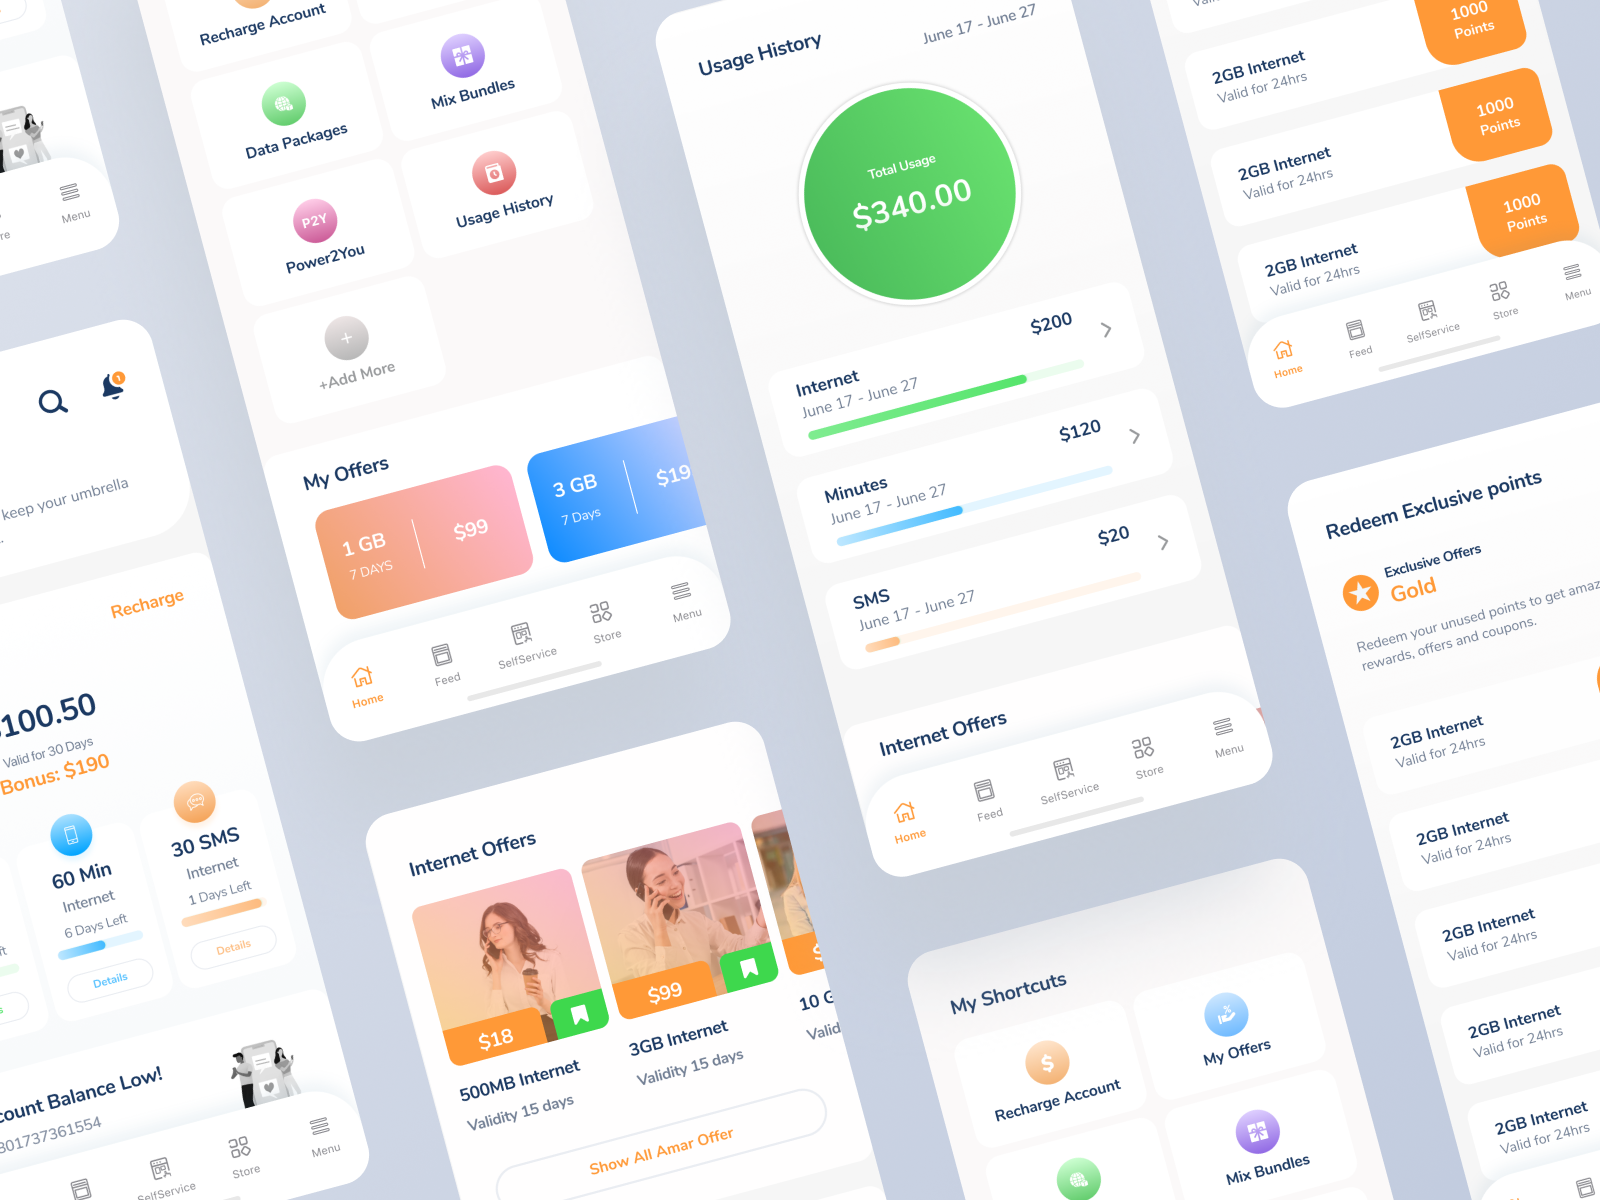 Mobile App Design Concept In 2020 Mobile App Design App Design Mobile App